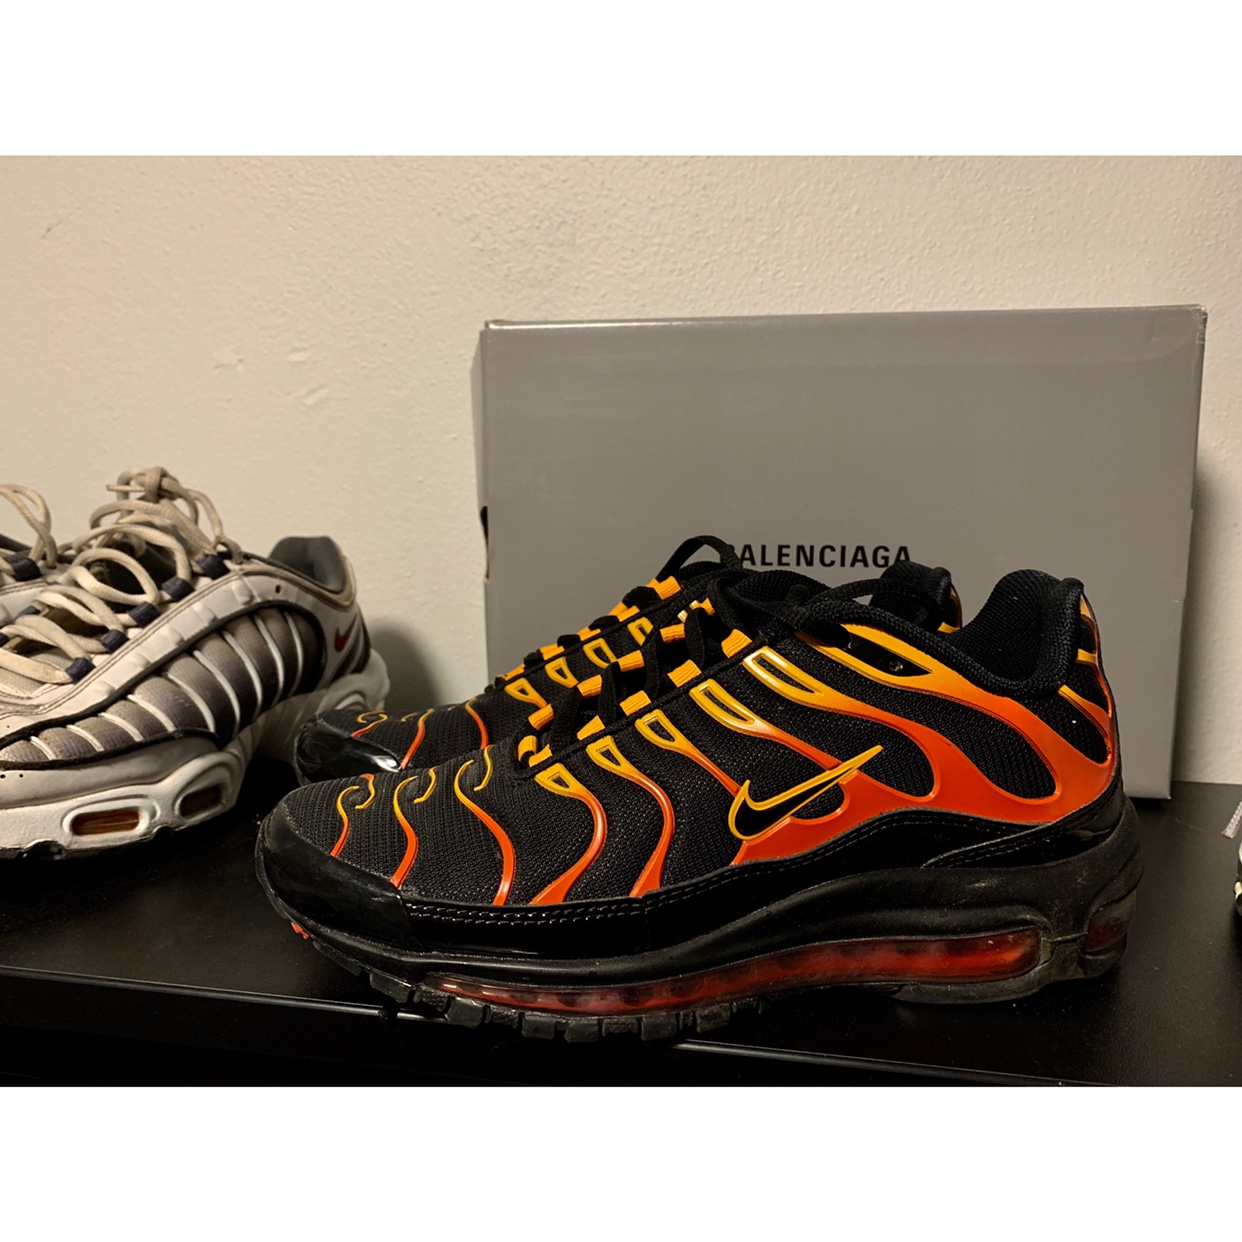 low priced e5fa9 bc6a0 Nike Tn x 97 2018, size Us 7, 8/10 condition... - Depop